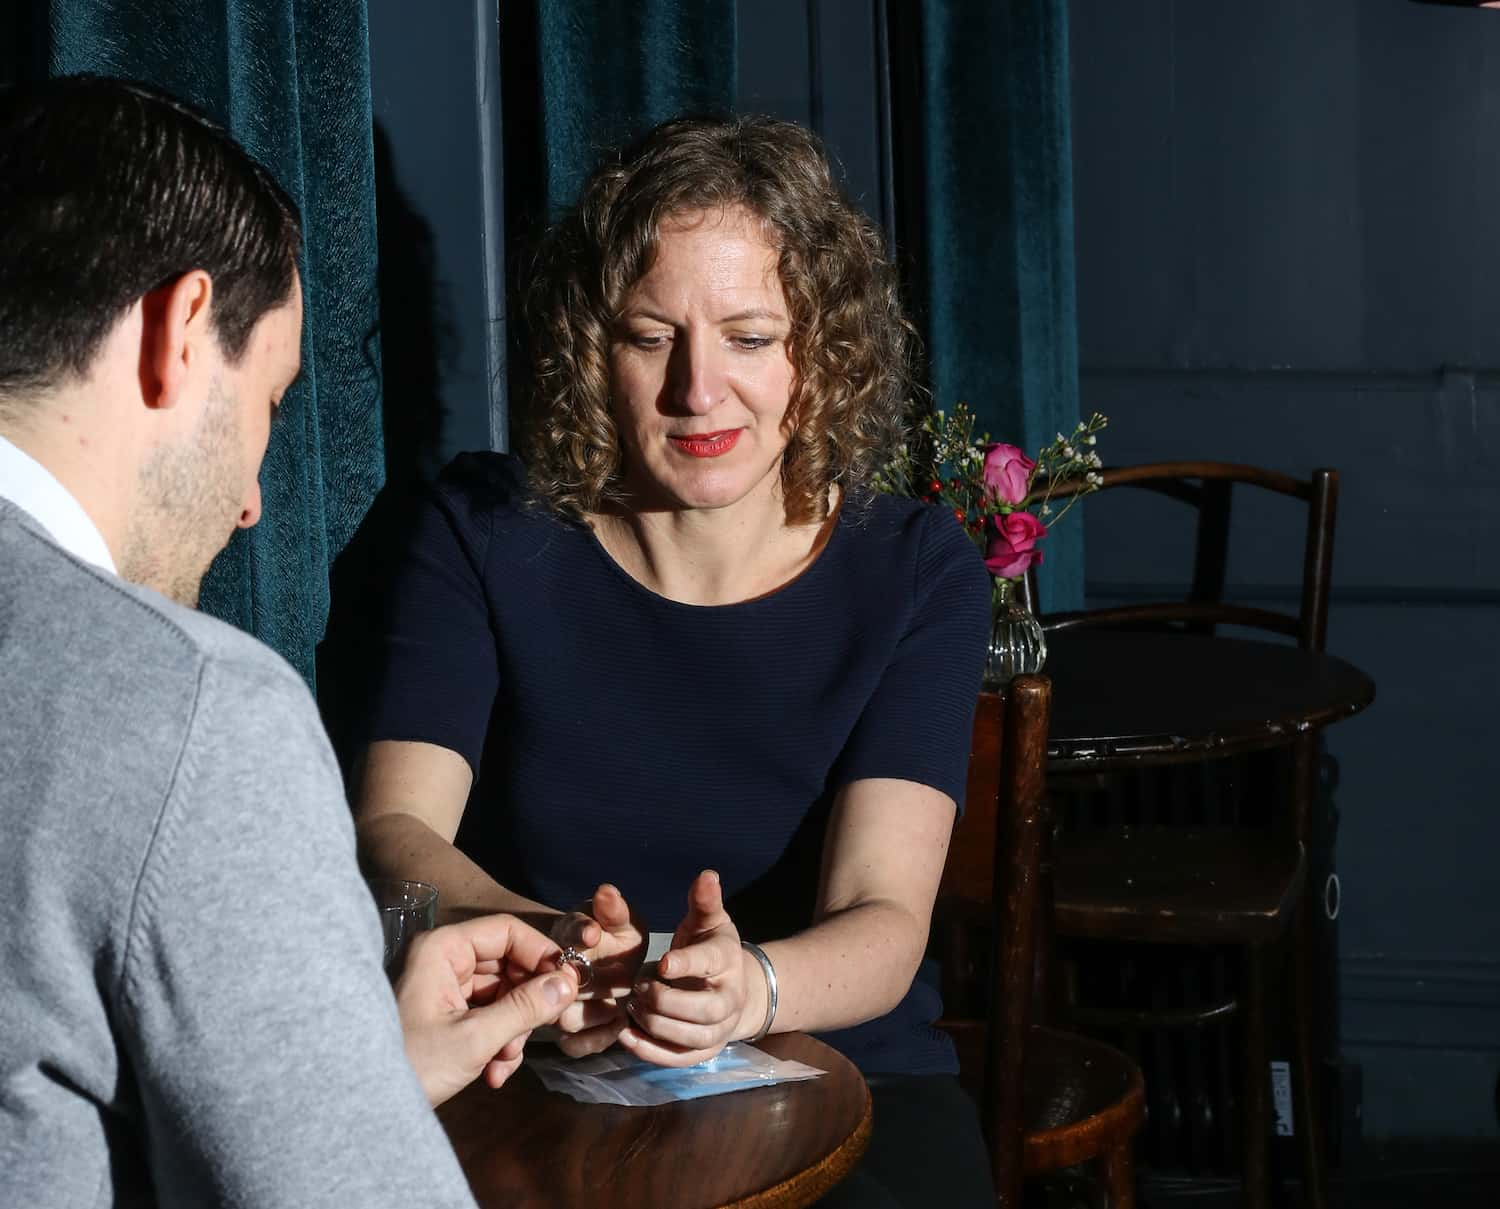 Ruth and a client discussing a ring